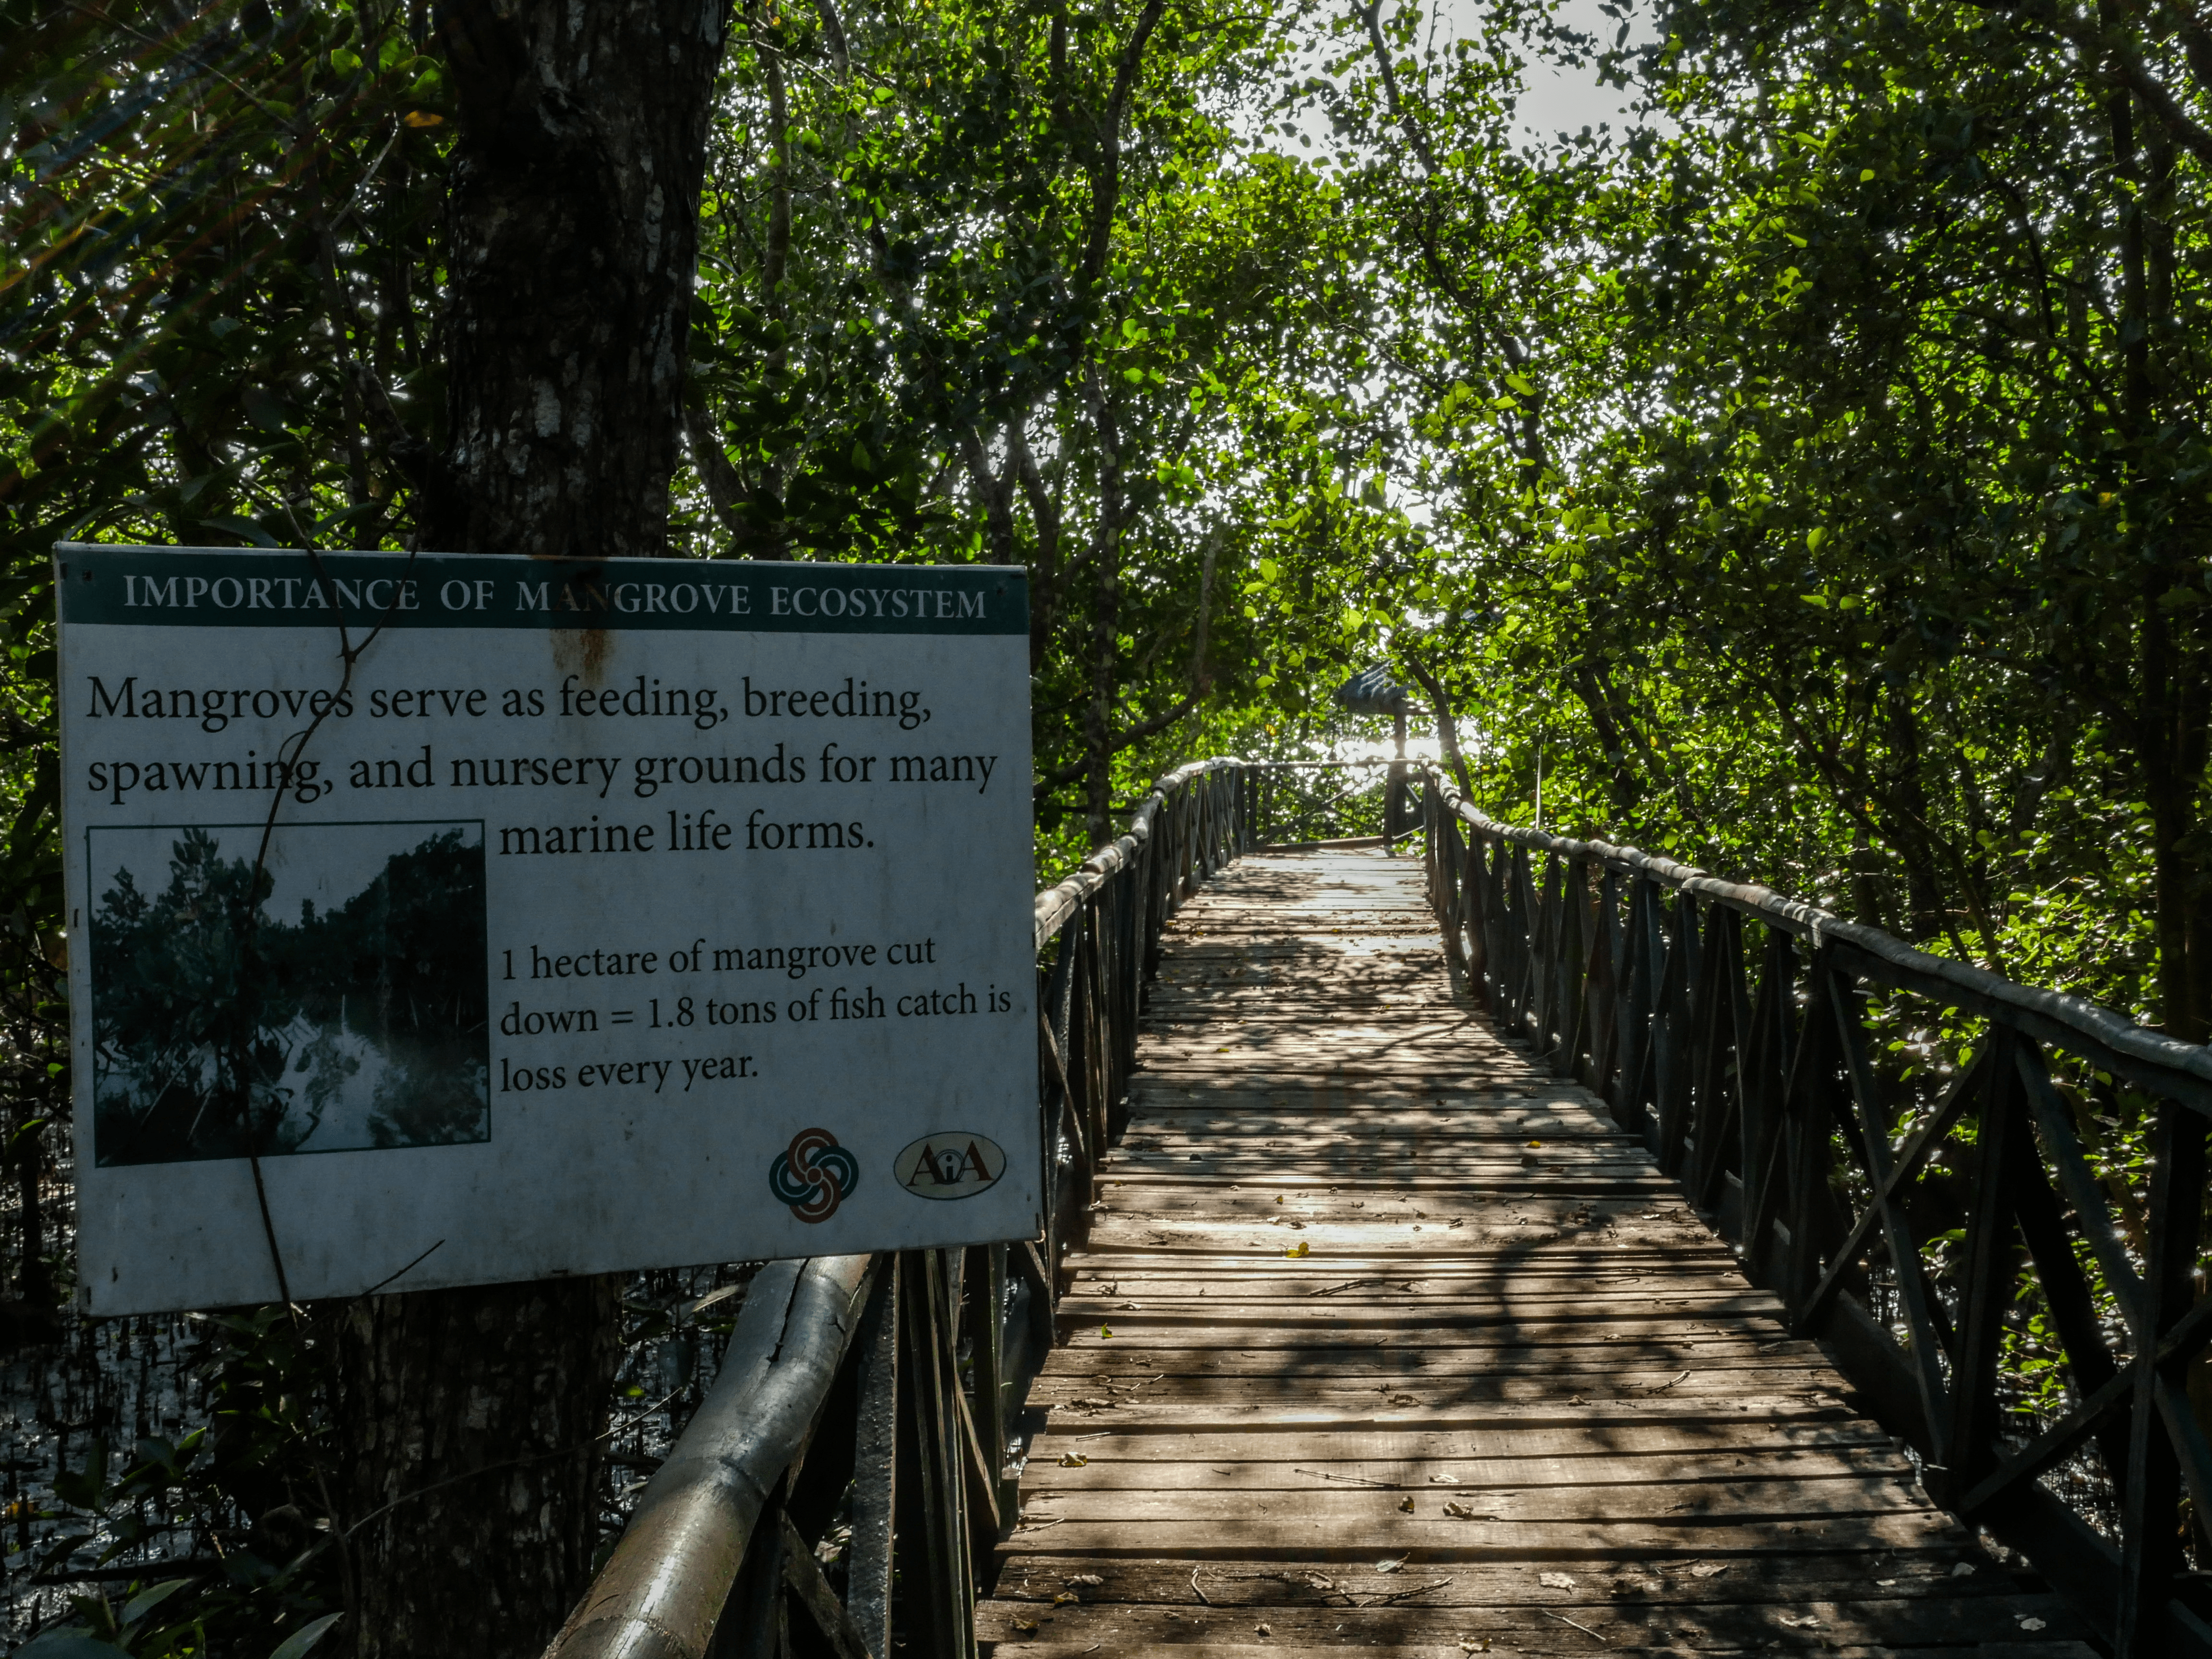 sign plat with description and pathway in triboa bay mangrove park in subic zambales philippines